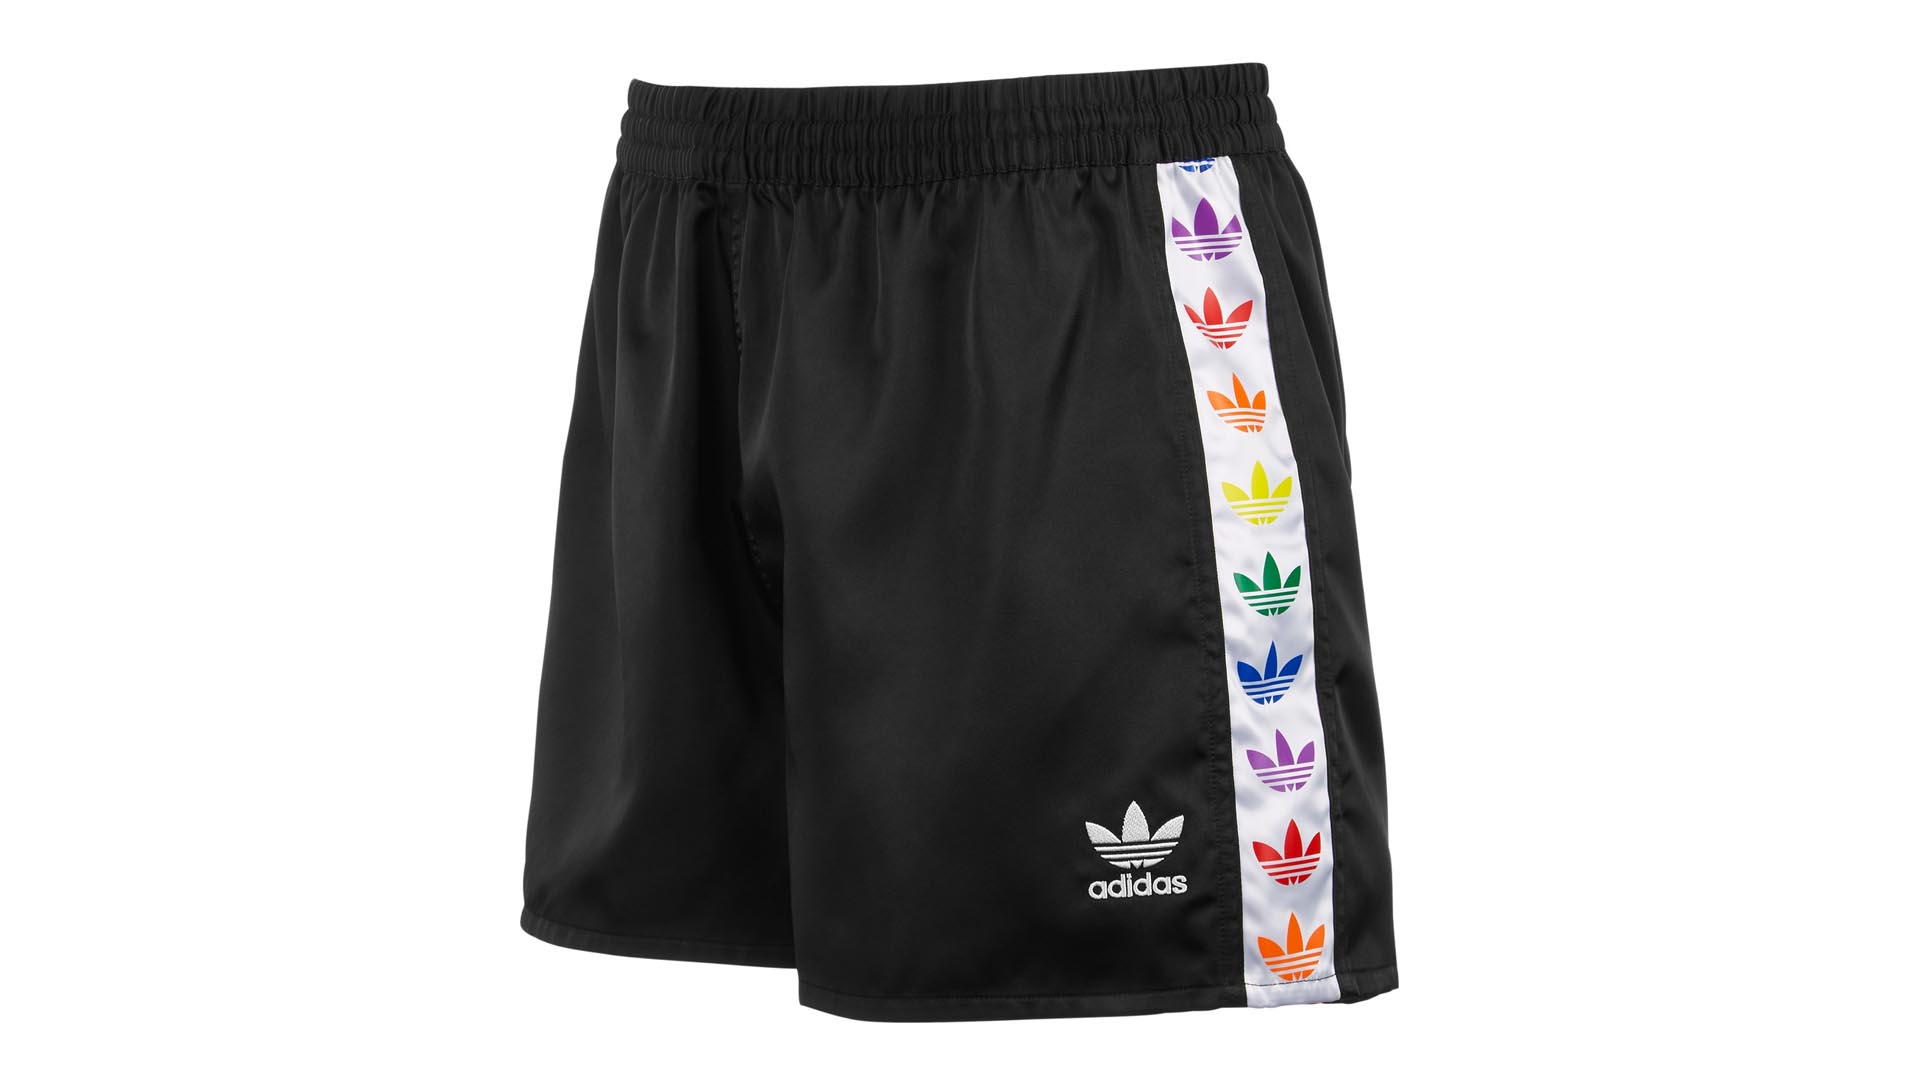 dress-up-with-pride-adidas-originals-rainbow-logo-shorts